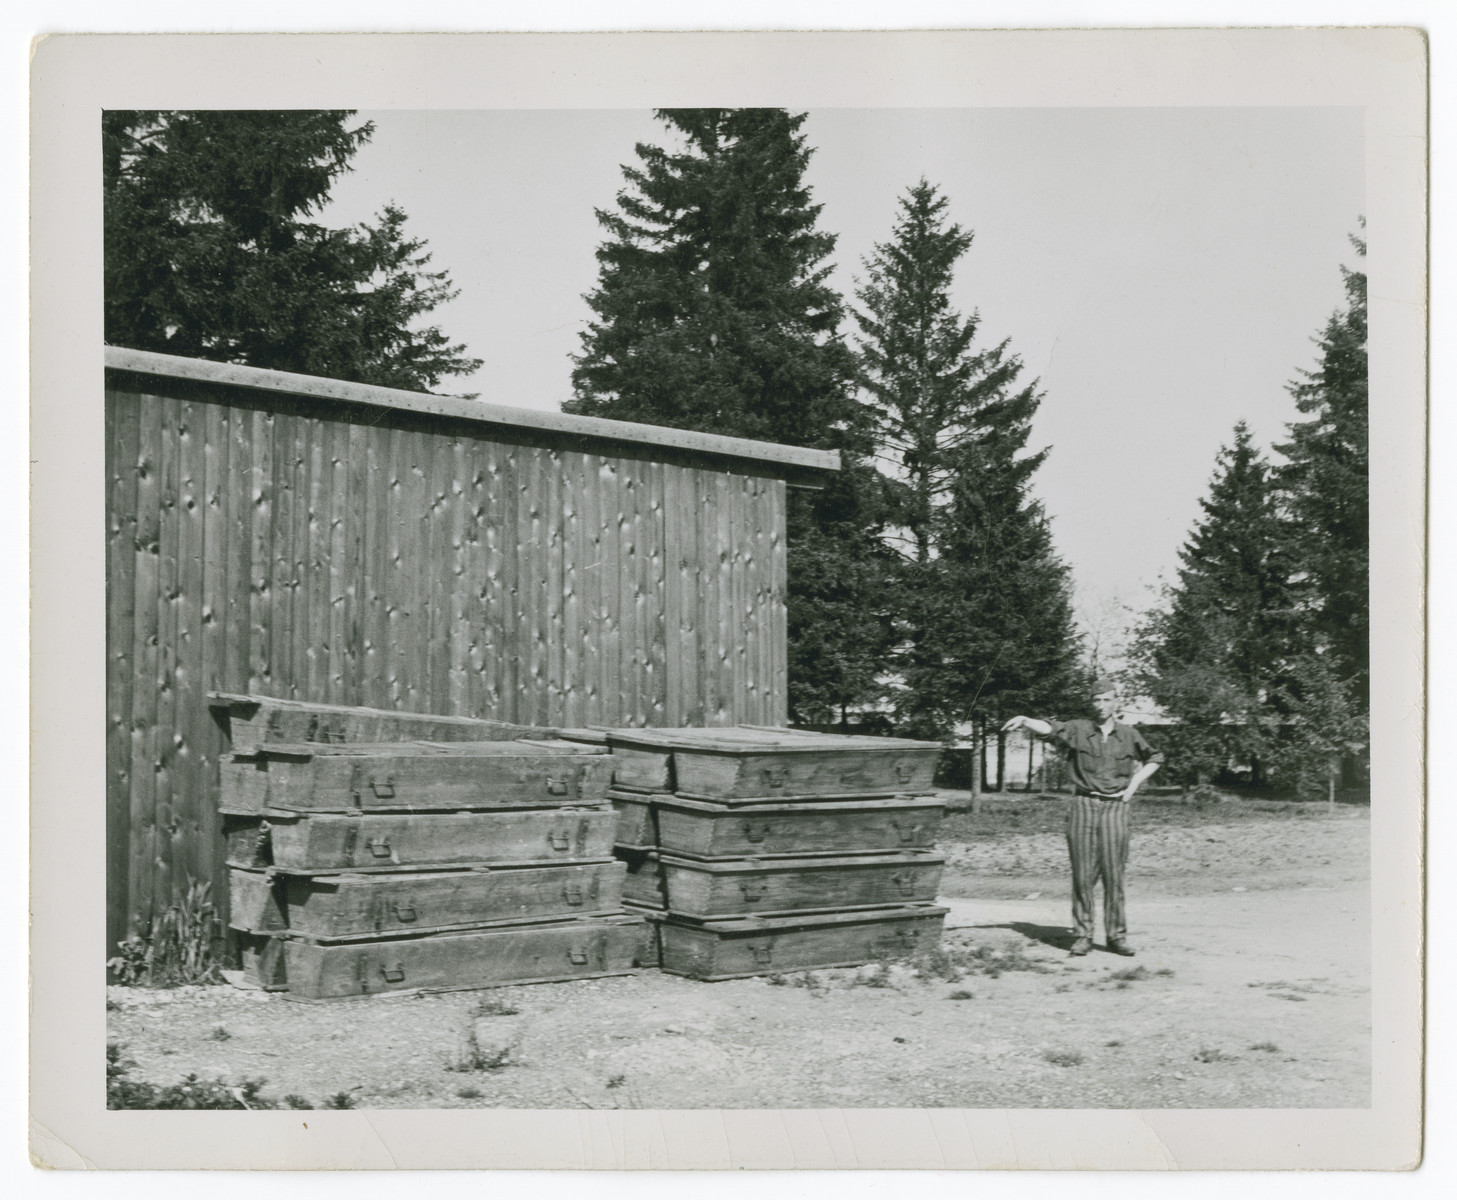 A liberated prisoner stands next to a stack of coffins outside a barrack of the Dachau concentration camp.